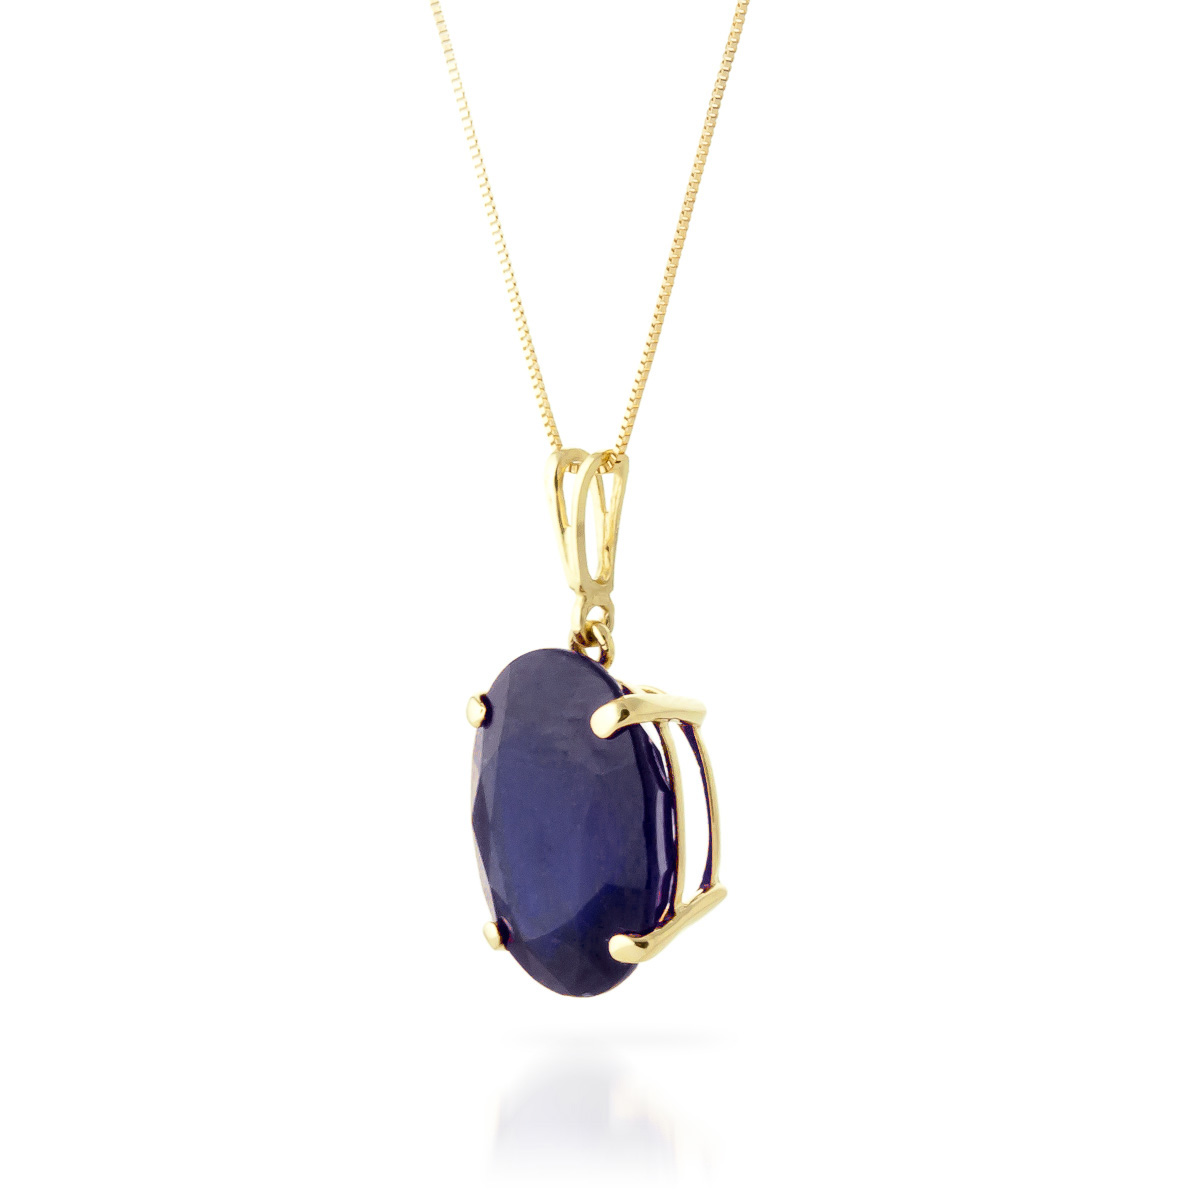 Sapphire oval pendant necklace 85 ct in 9ct gold 2553y qp jewellers sapphire oval pendant necklace 85 ct in 9ct gold aloadofball Choice Image